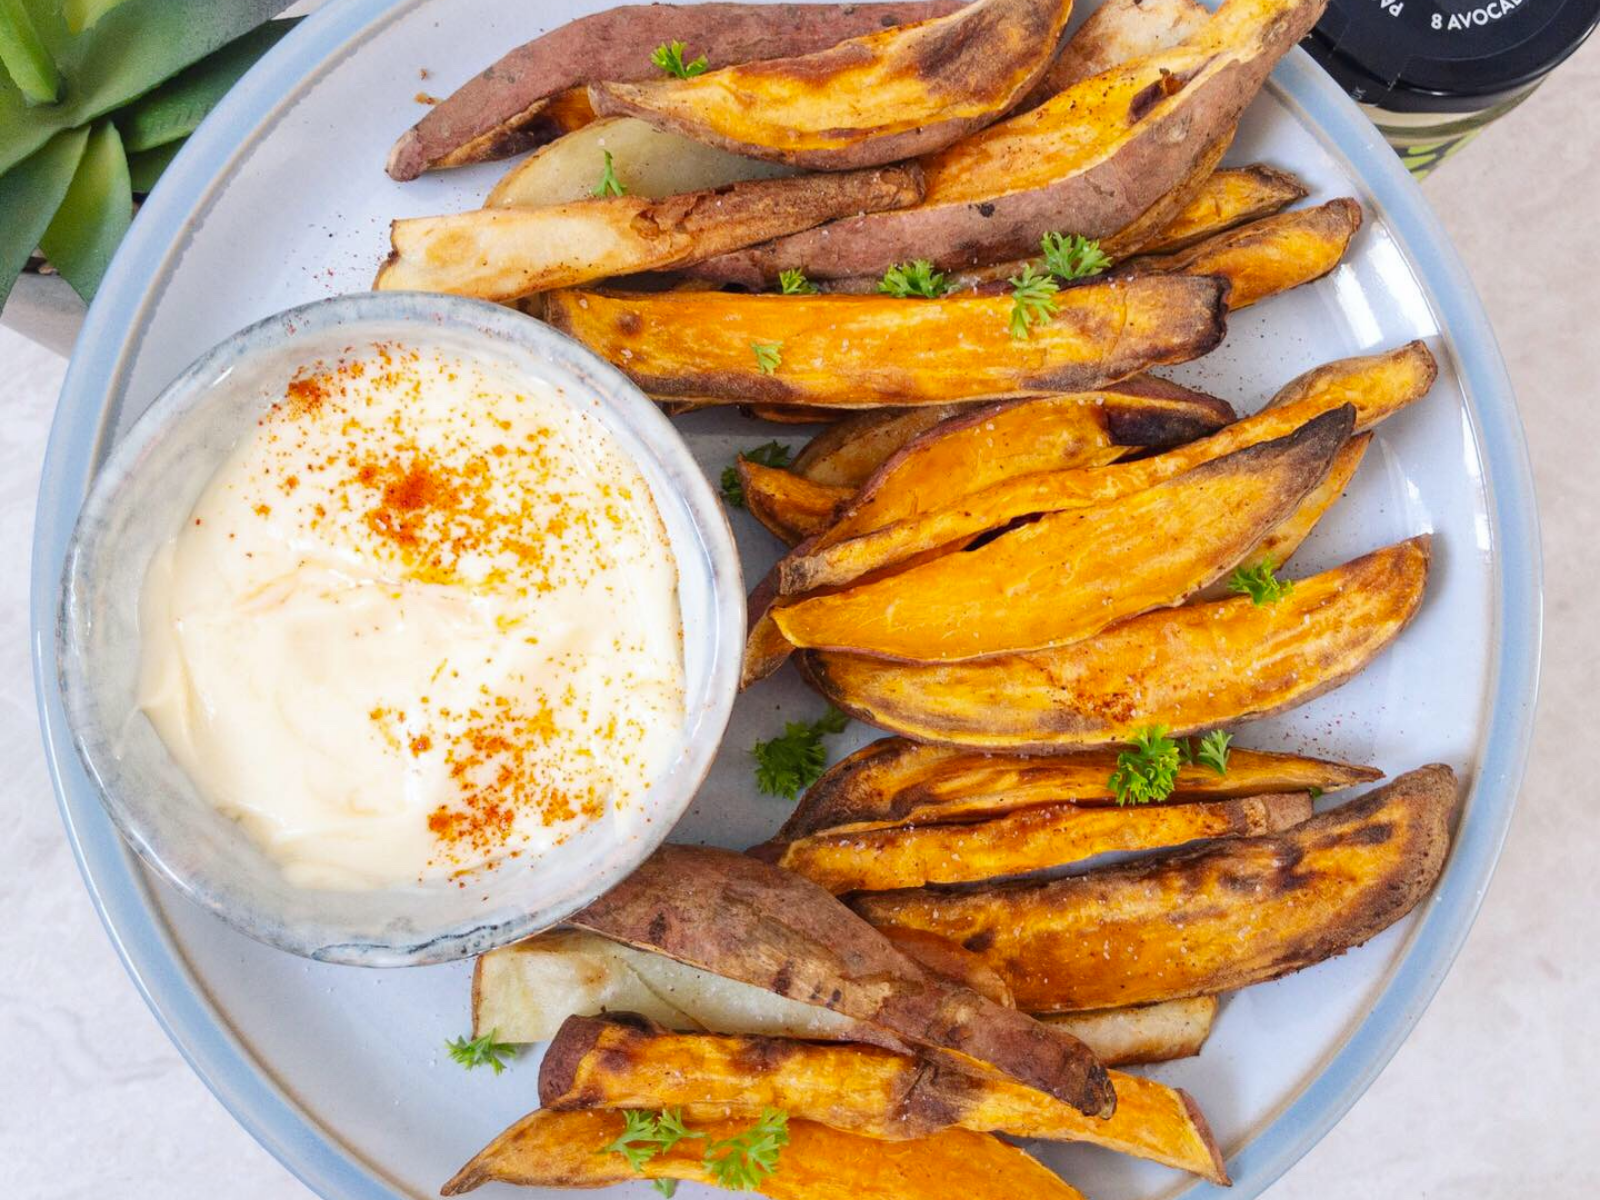 Vegan Healthy Air-Fryer Sweet Potato Fries